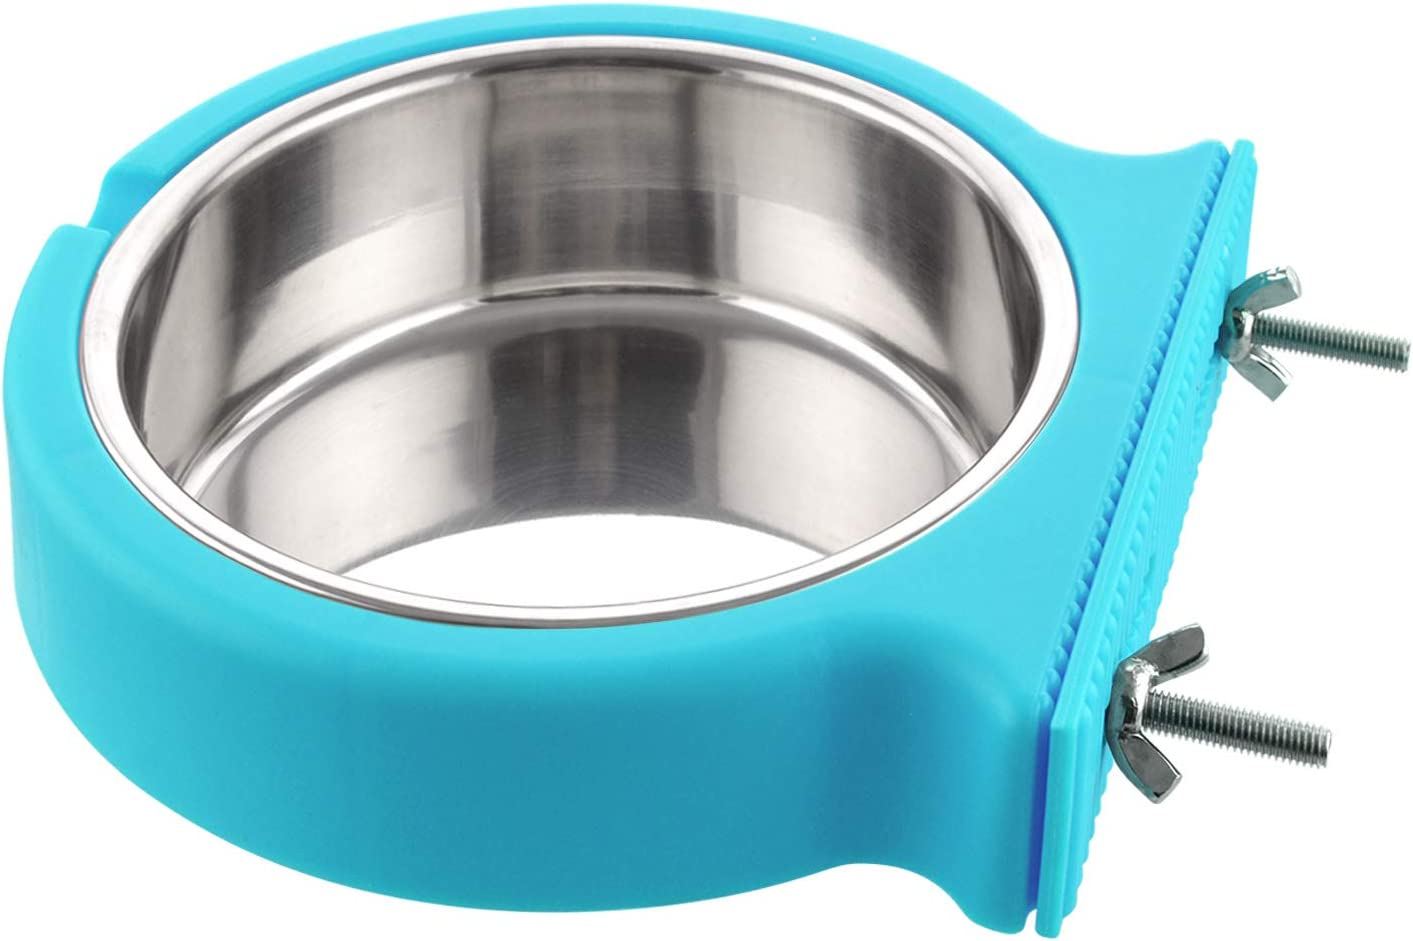 Guardians Crate Dog Bowl, Removable Stainless Steel Water Food Feeder Bowls Cage Coop Cup for Cat Puppy Bird Pets